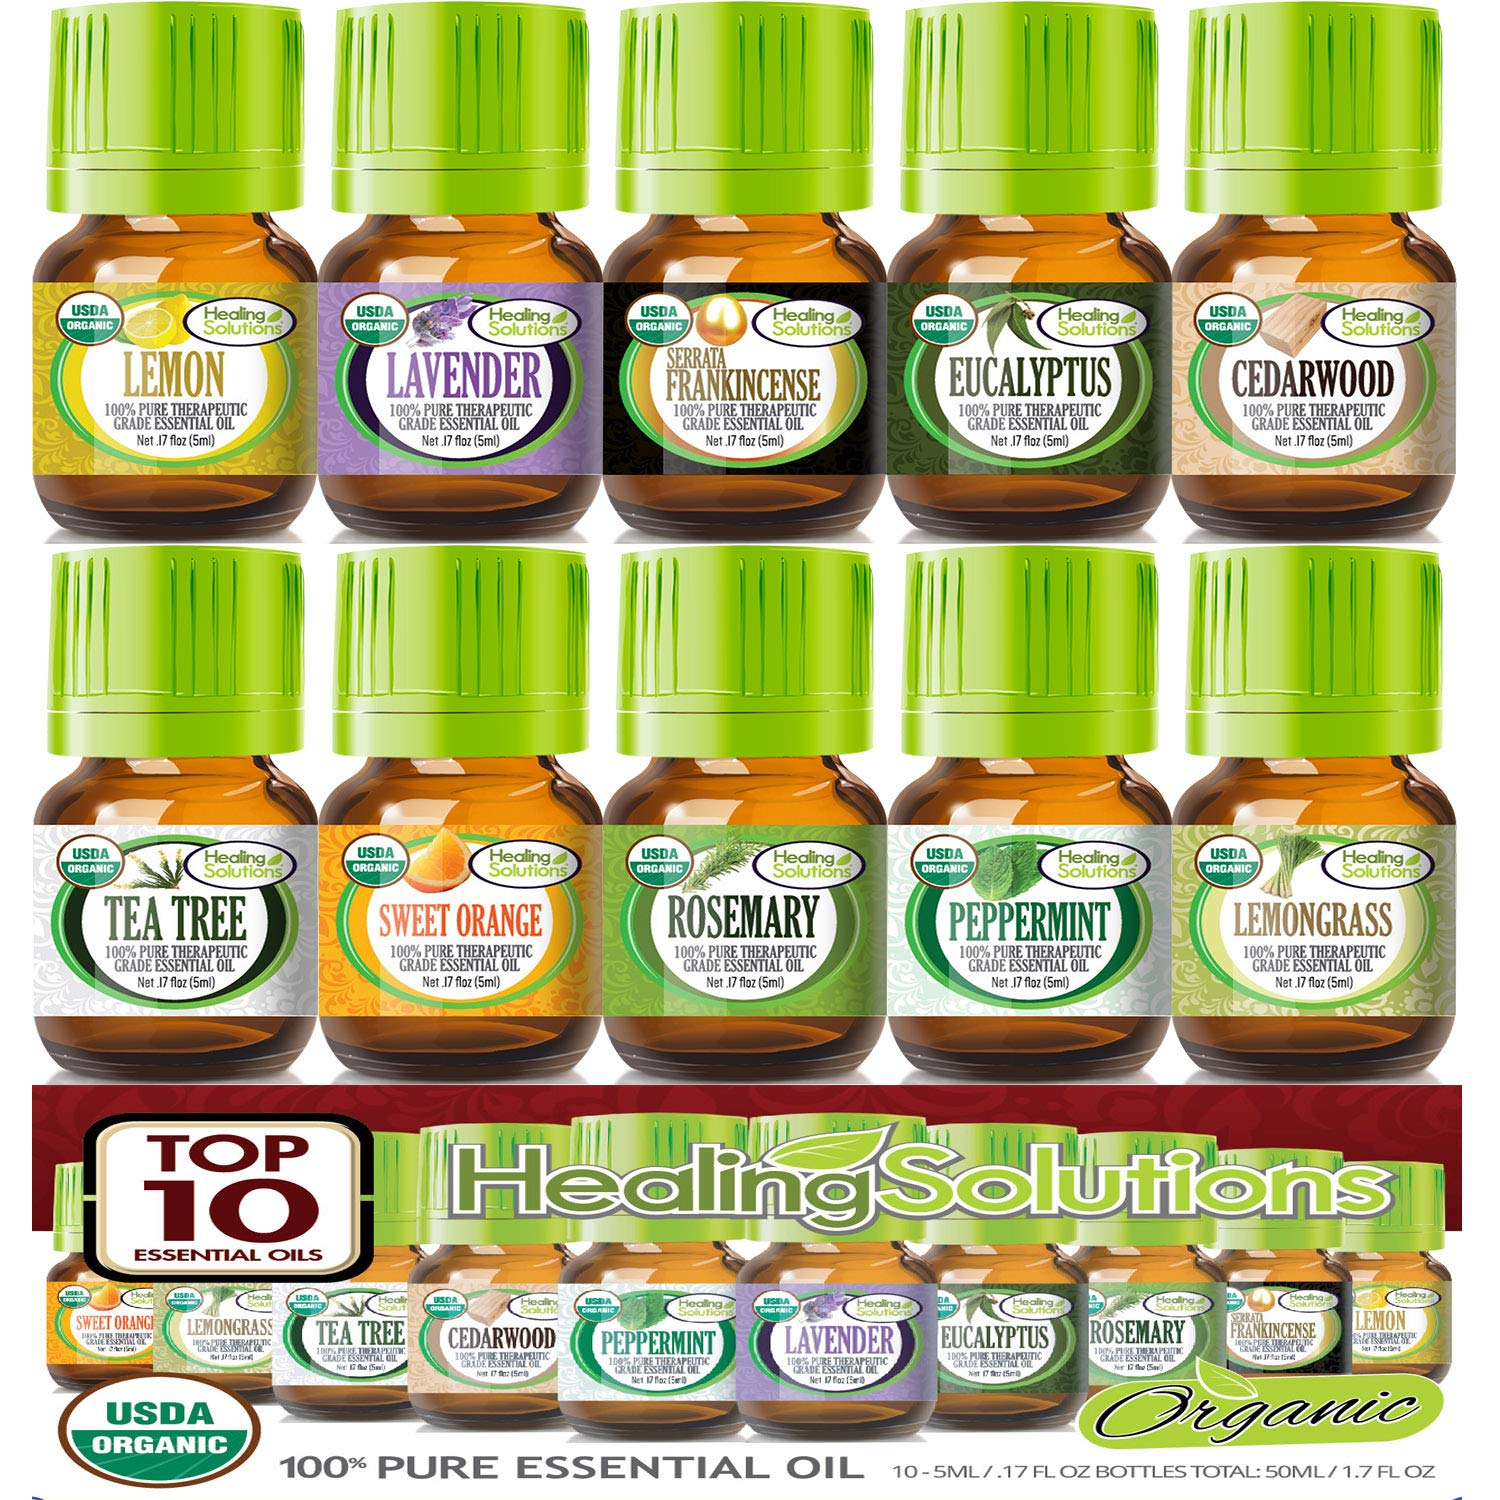 Top 10 USDA Certified Organic Essential Oils Set (10 Pack - 100% Pure & Natural) Therapeutic Grade - 5ml Set by Healing Solutions